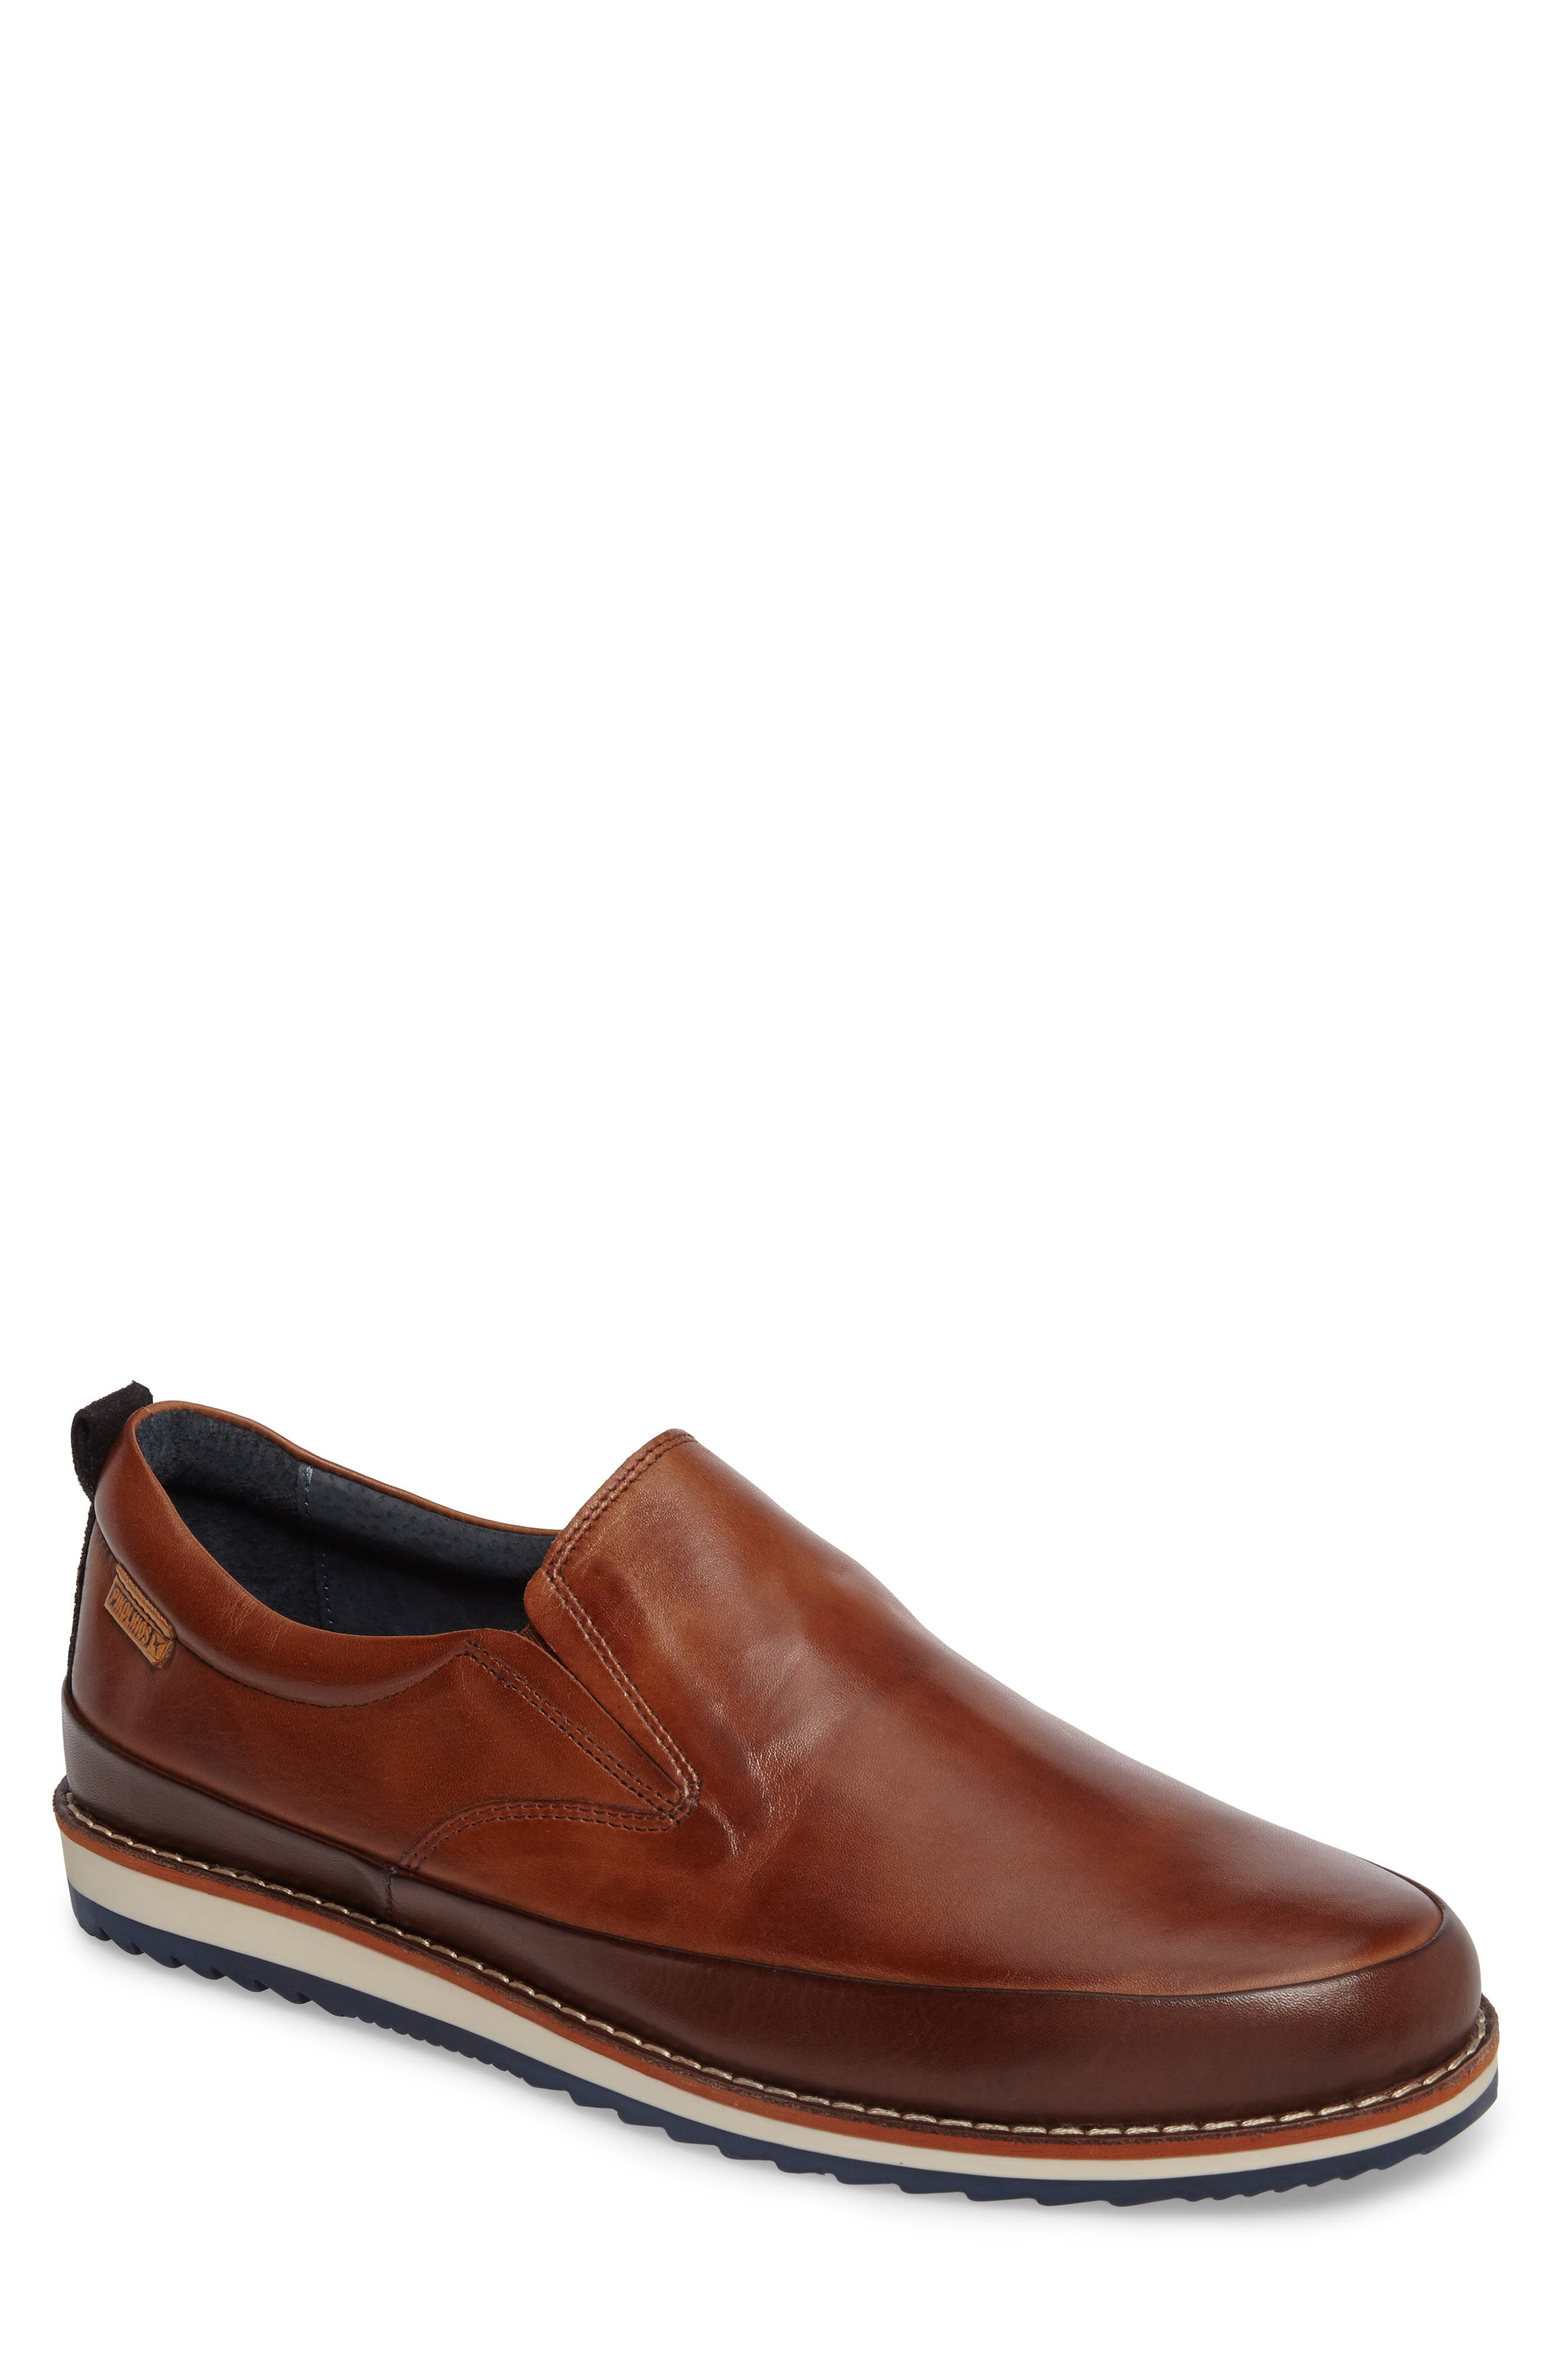 Biarritz Slip-On,                         Main,                         color, Brown Leather